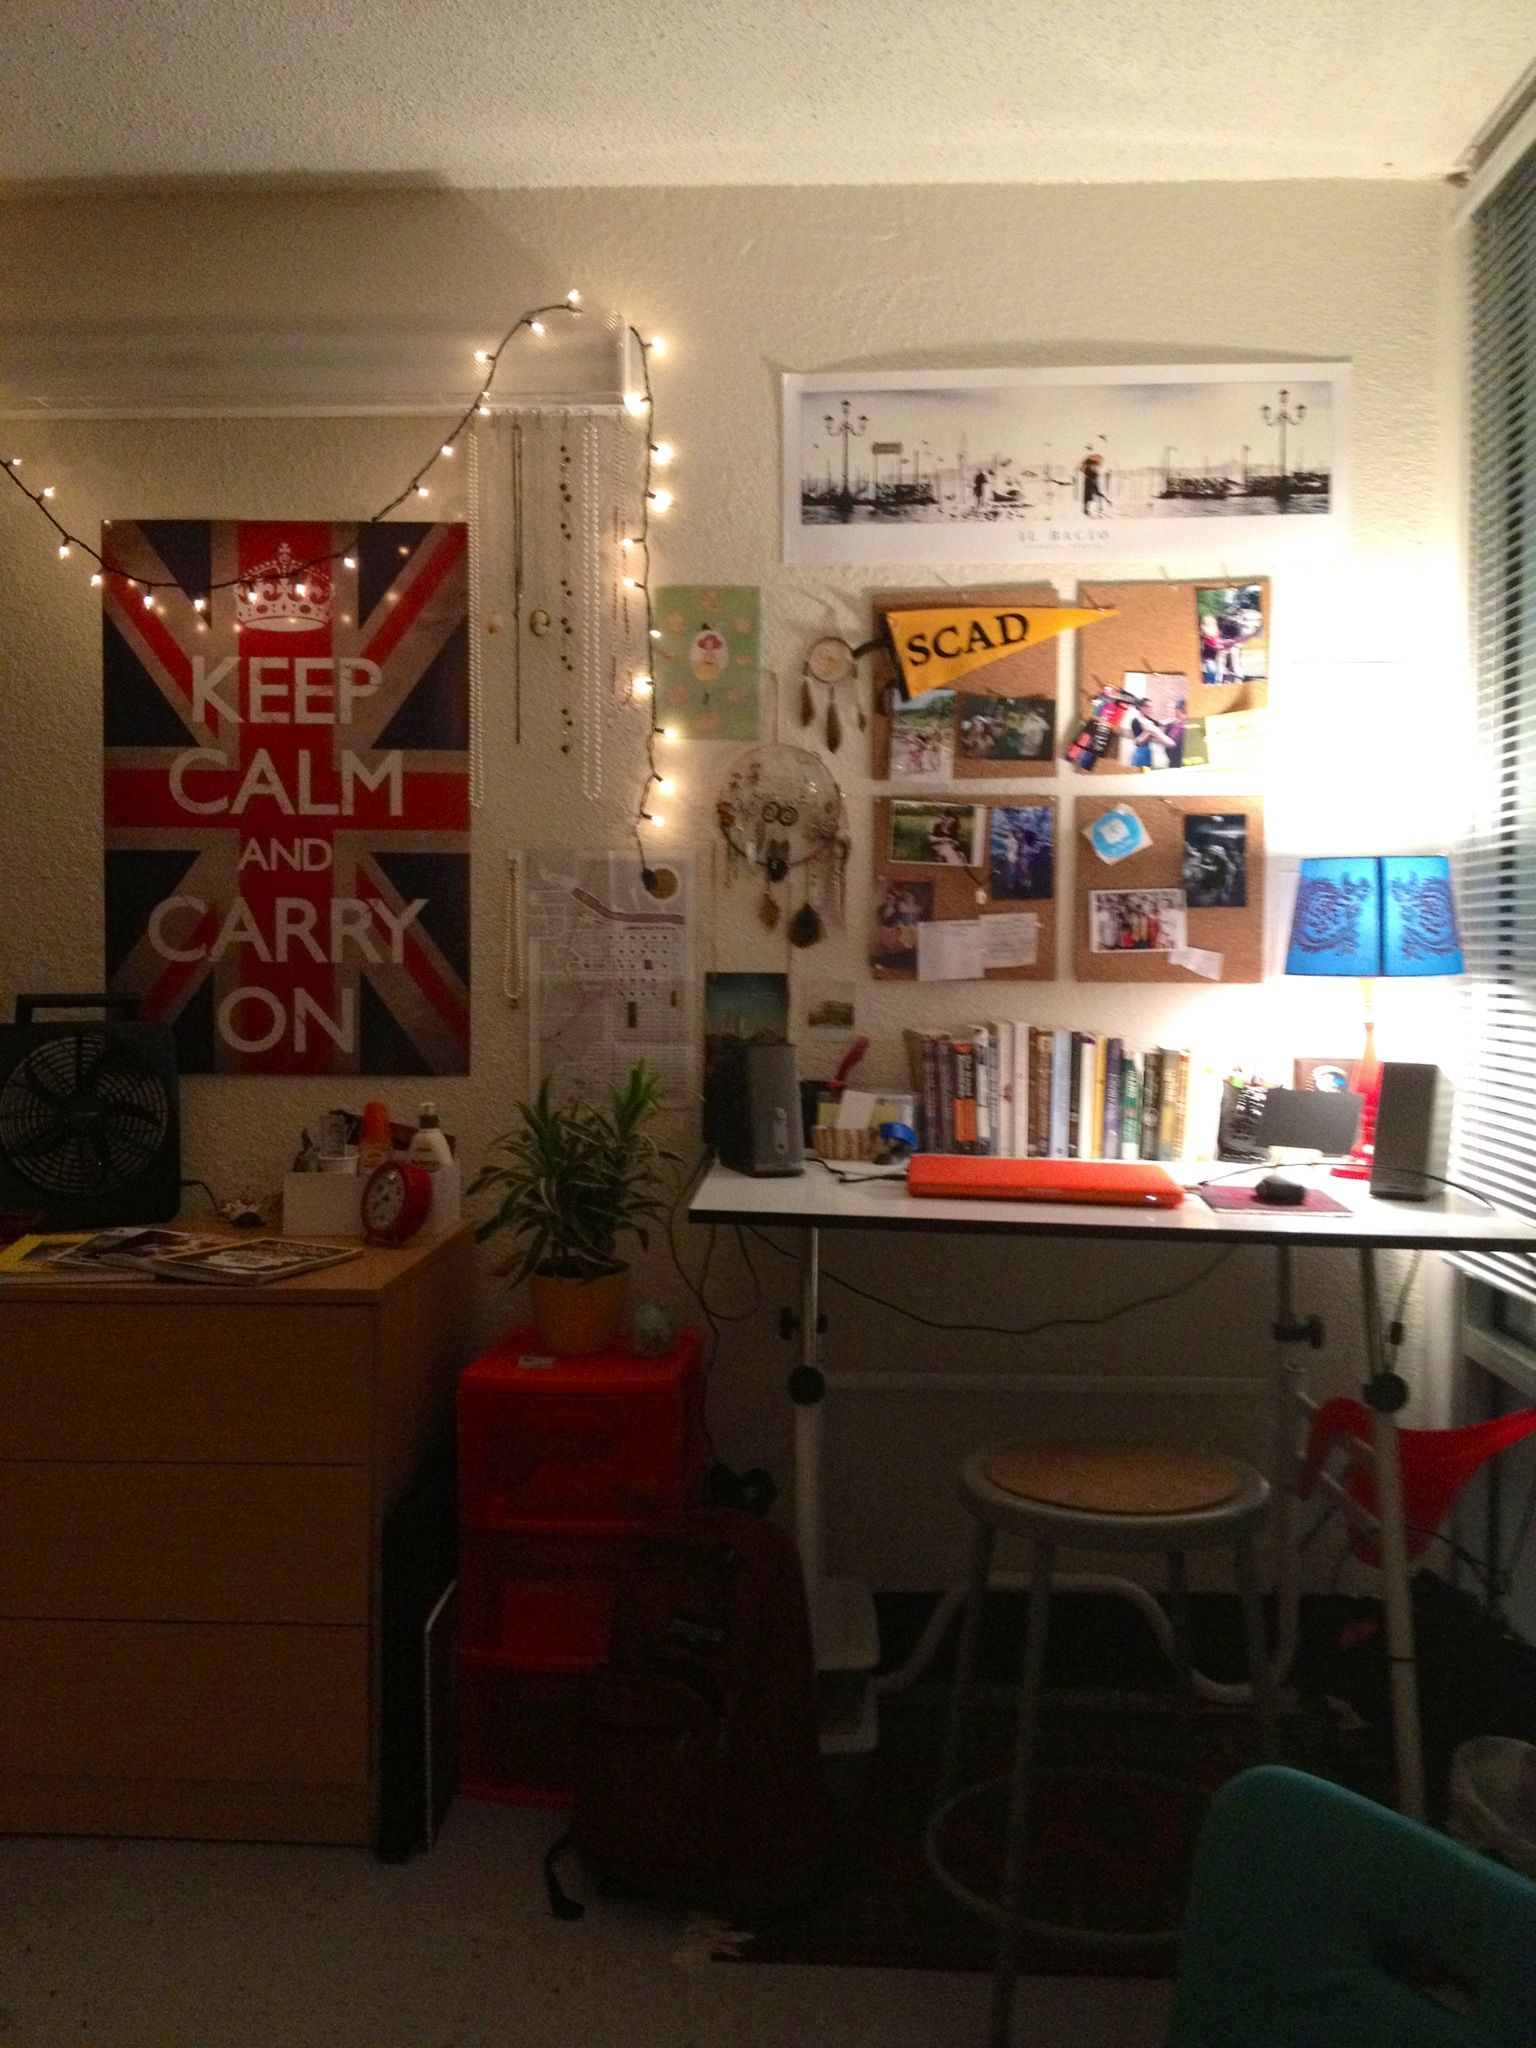 D life home interiors my desk and dresser in my dorm room the decorations make me feel